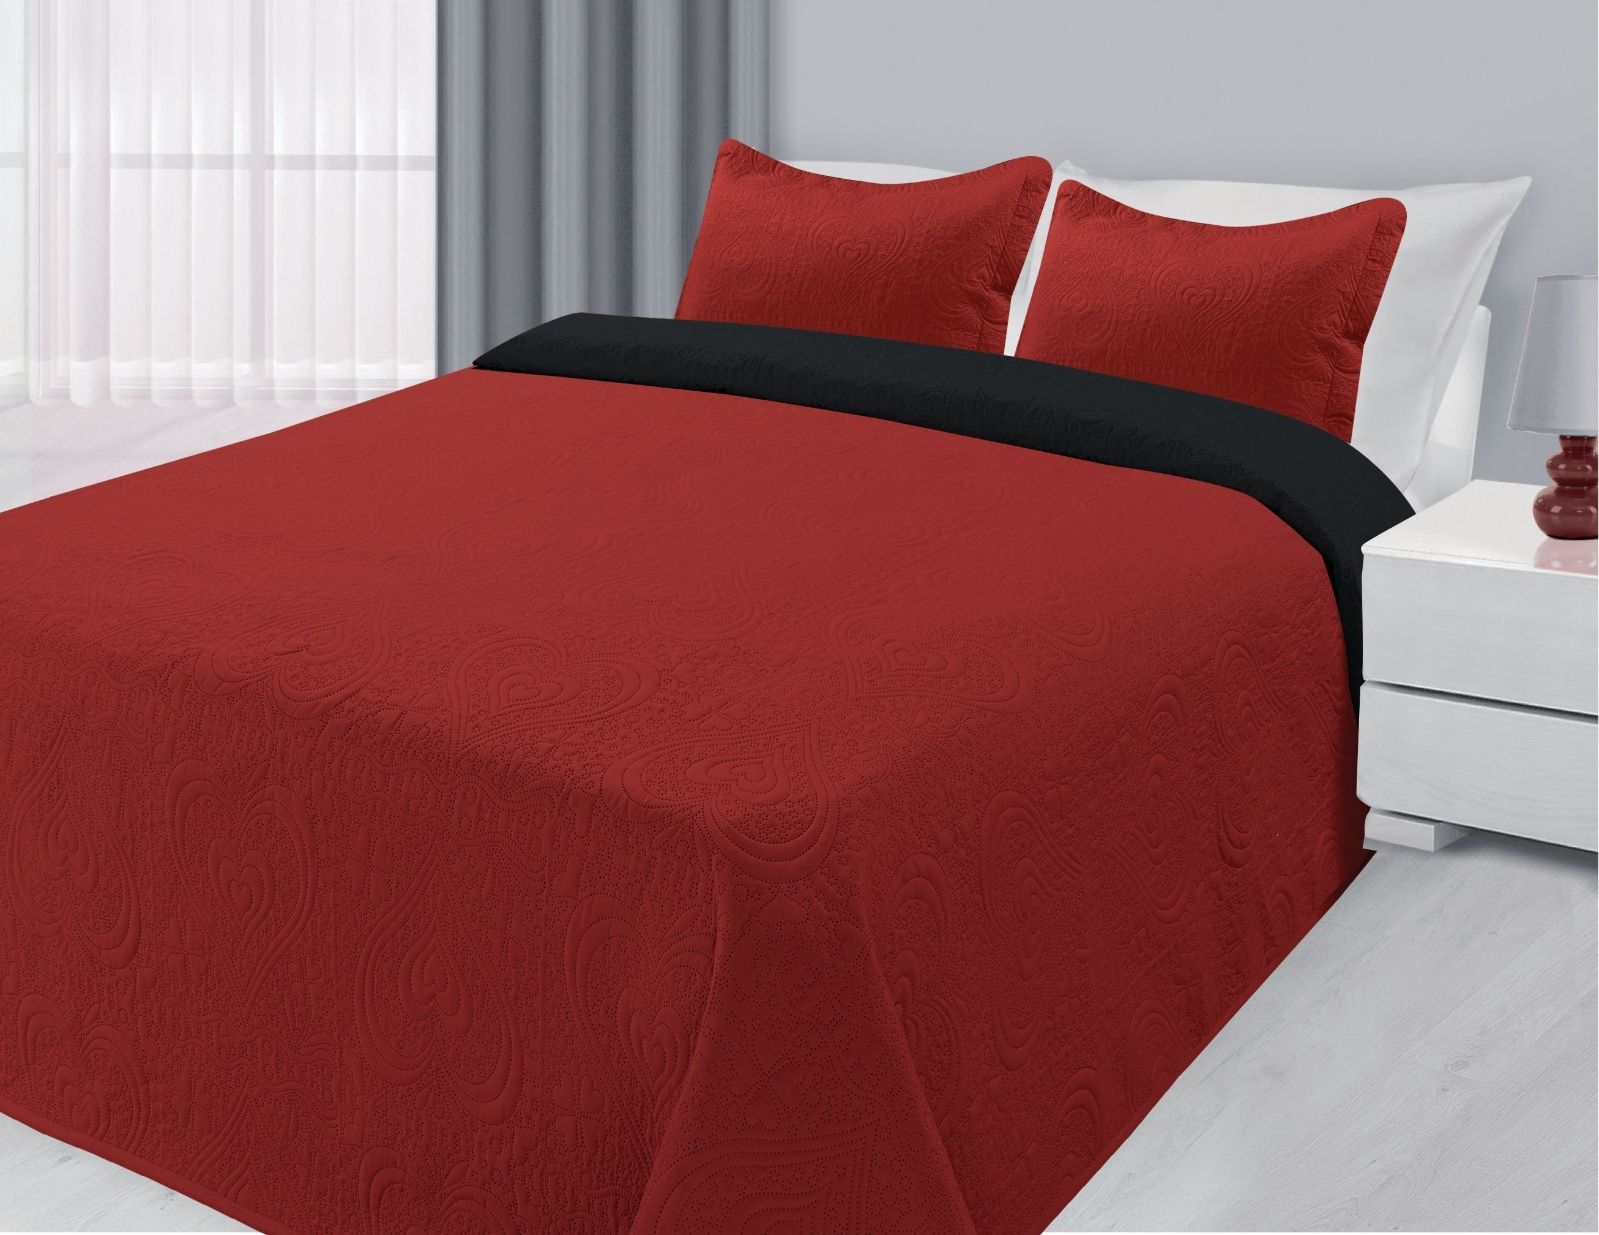 3-Piece Reversible Quilted Bedspread Coverlet Black & Red King Size by